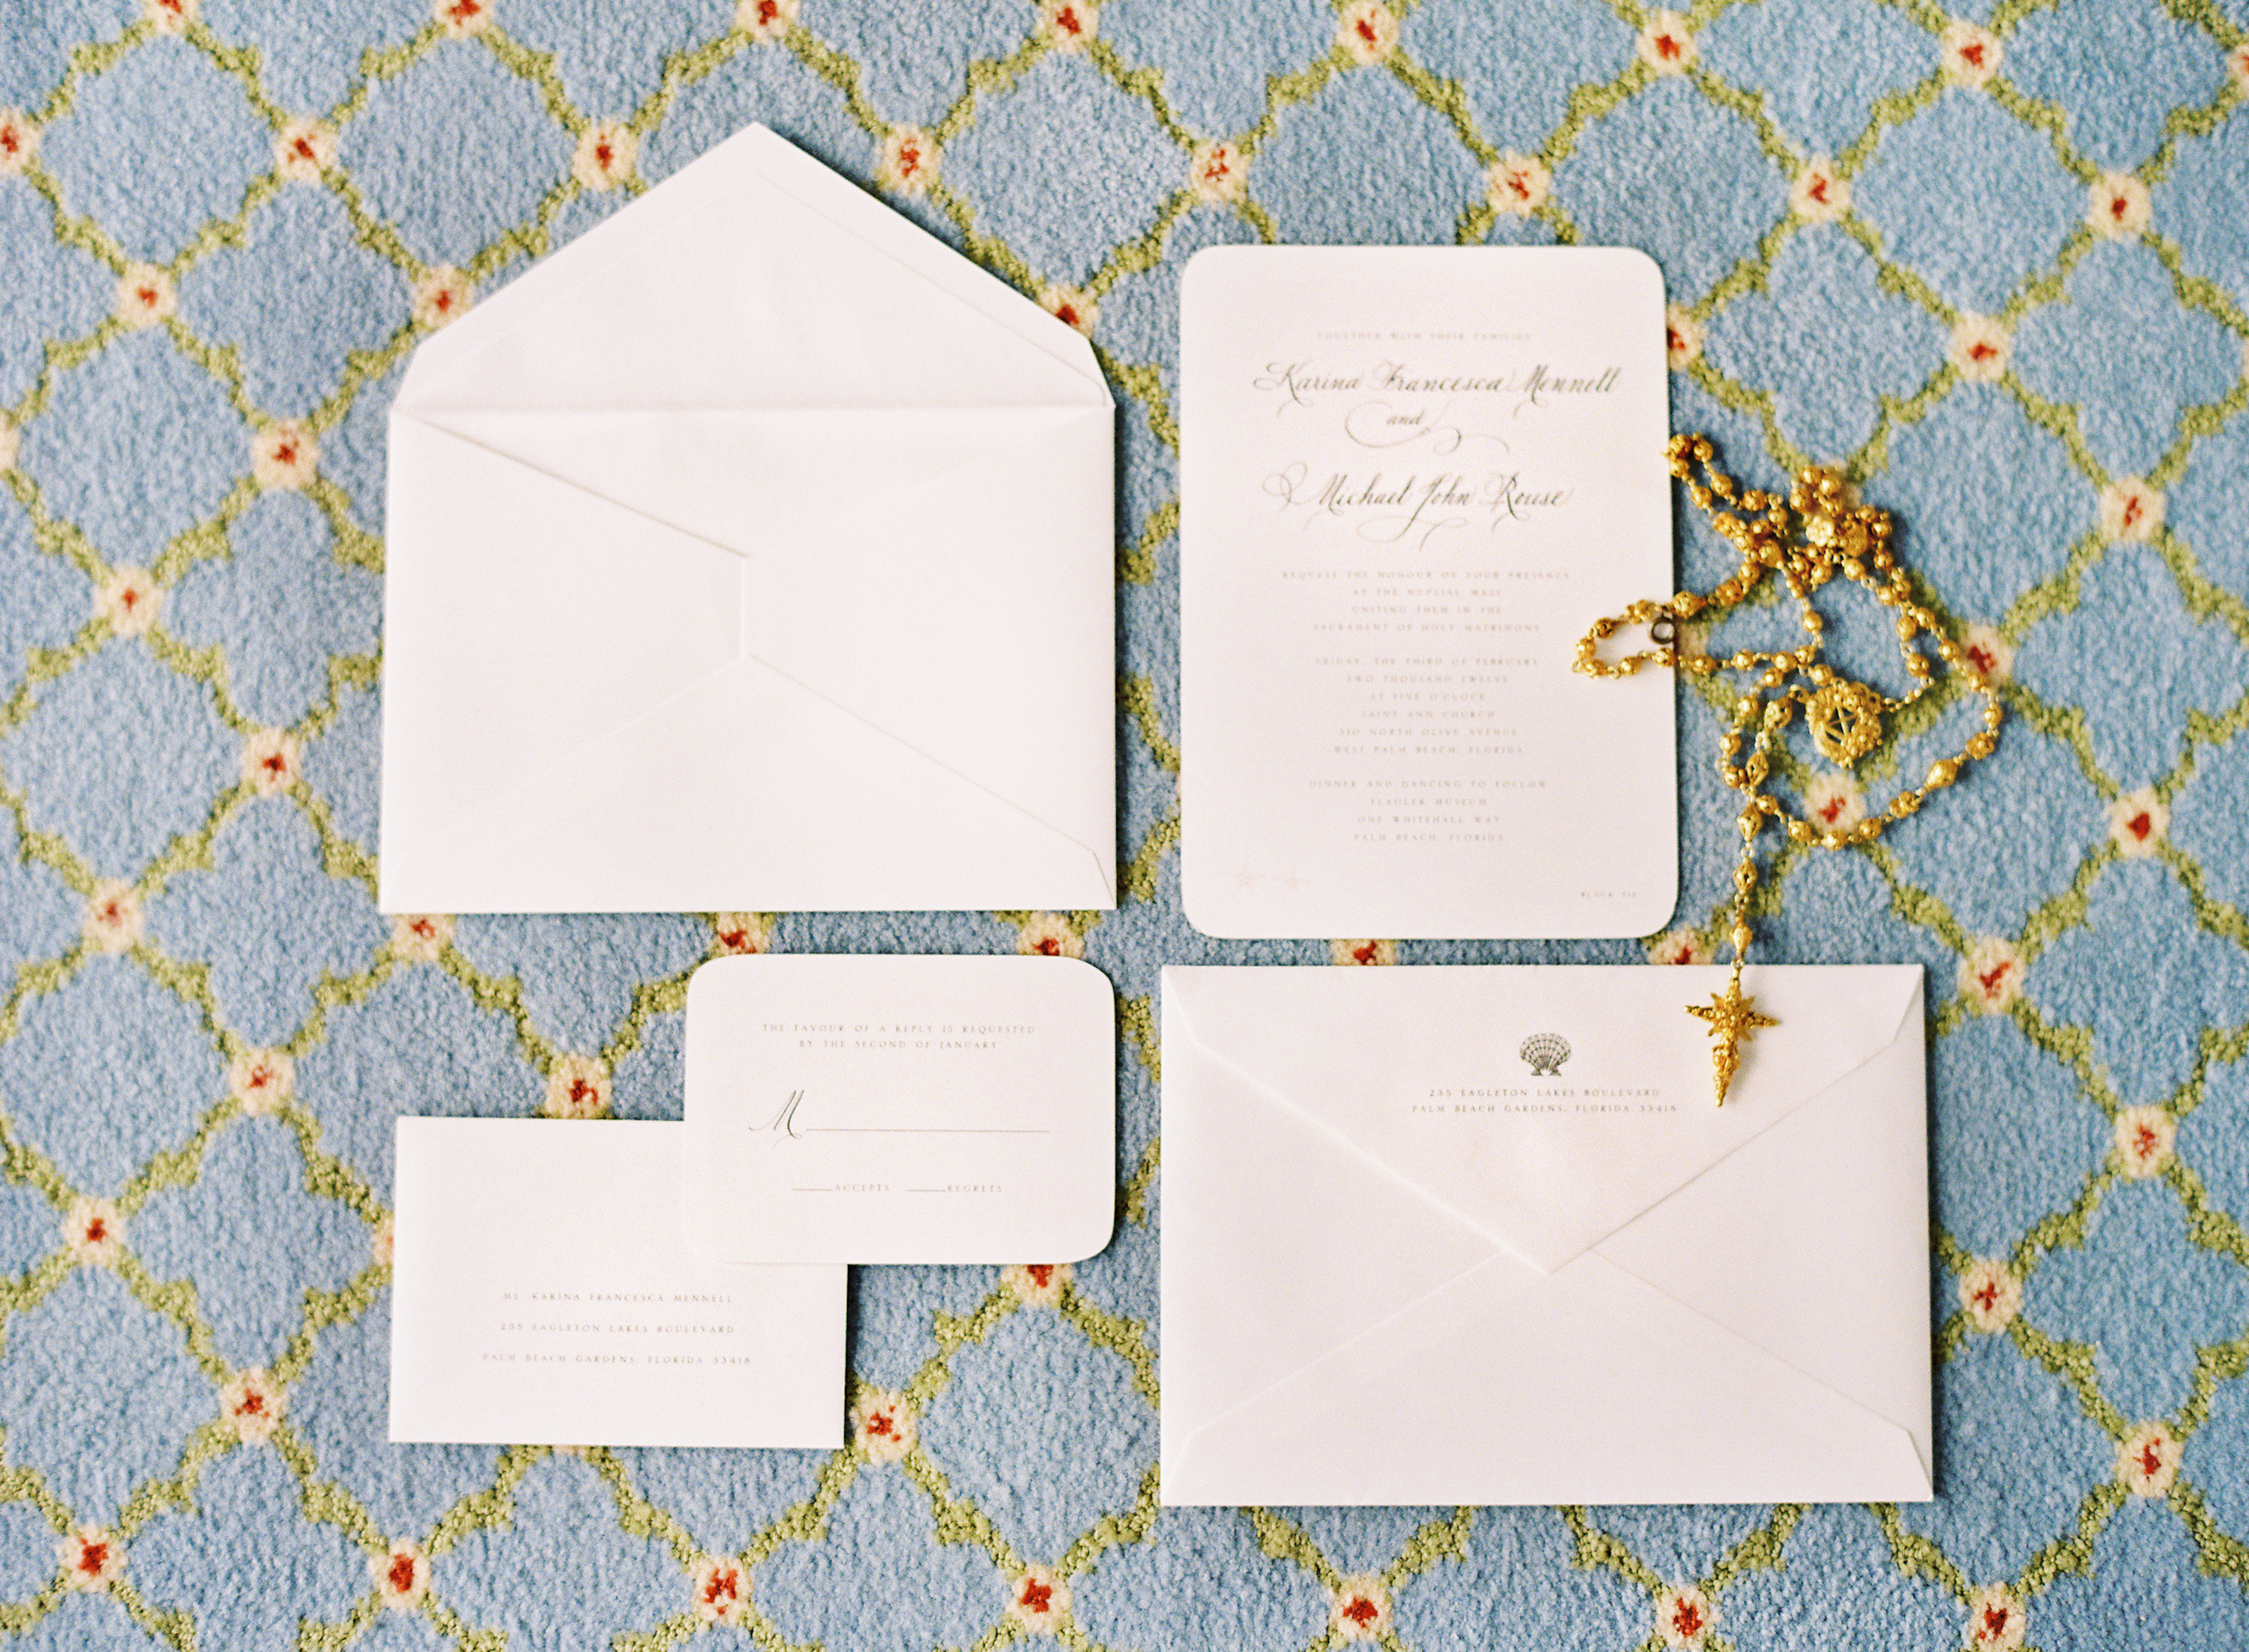 Stationery, Real Weddings, Classic, Classic Wedding Invitations, Glam Wedding Invitations, Vintage Wedding Invitations, Invitations, Southern Real Weddings, Elegant, Florida, Rosary, Southern weddings, florida real weddings, florida weddings